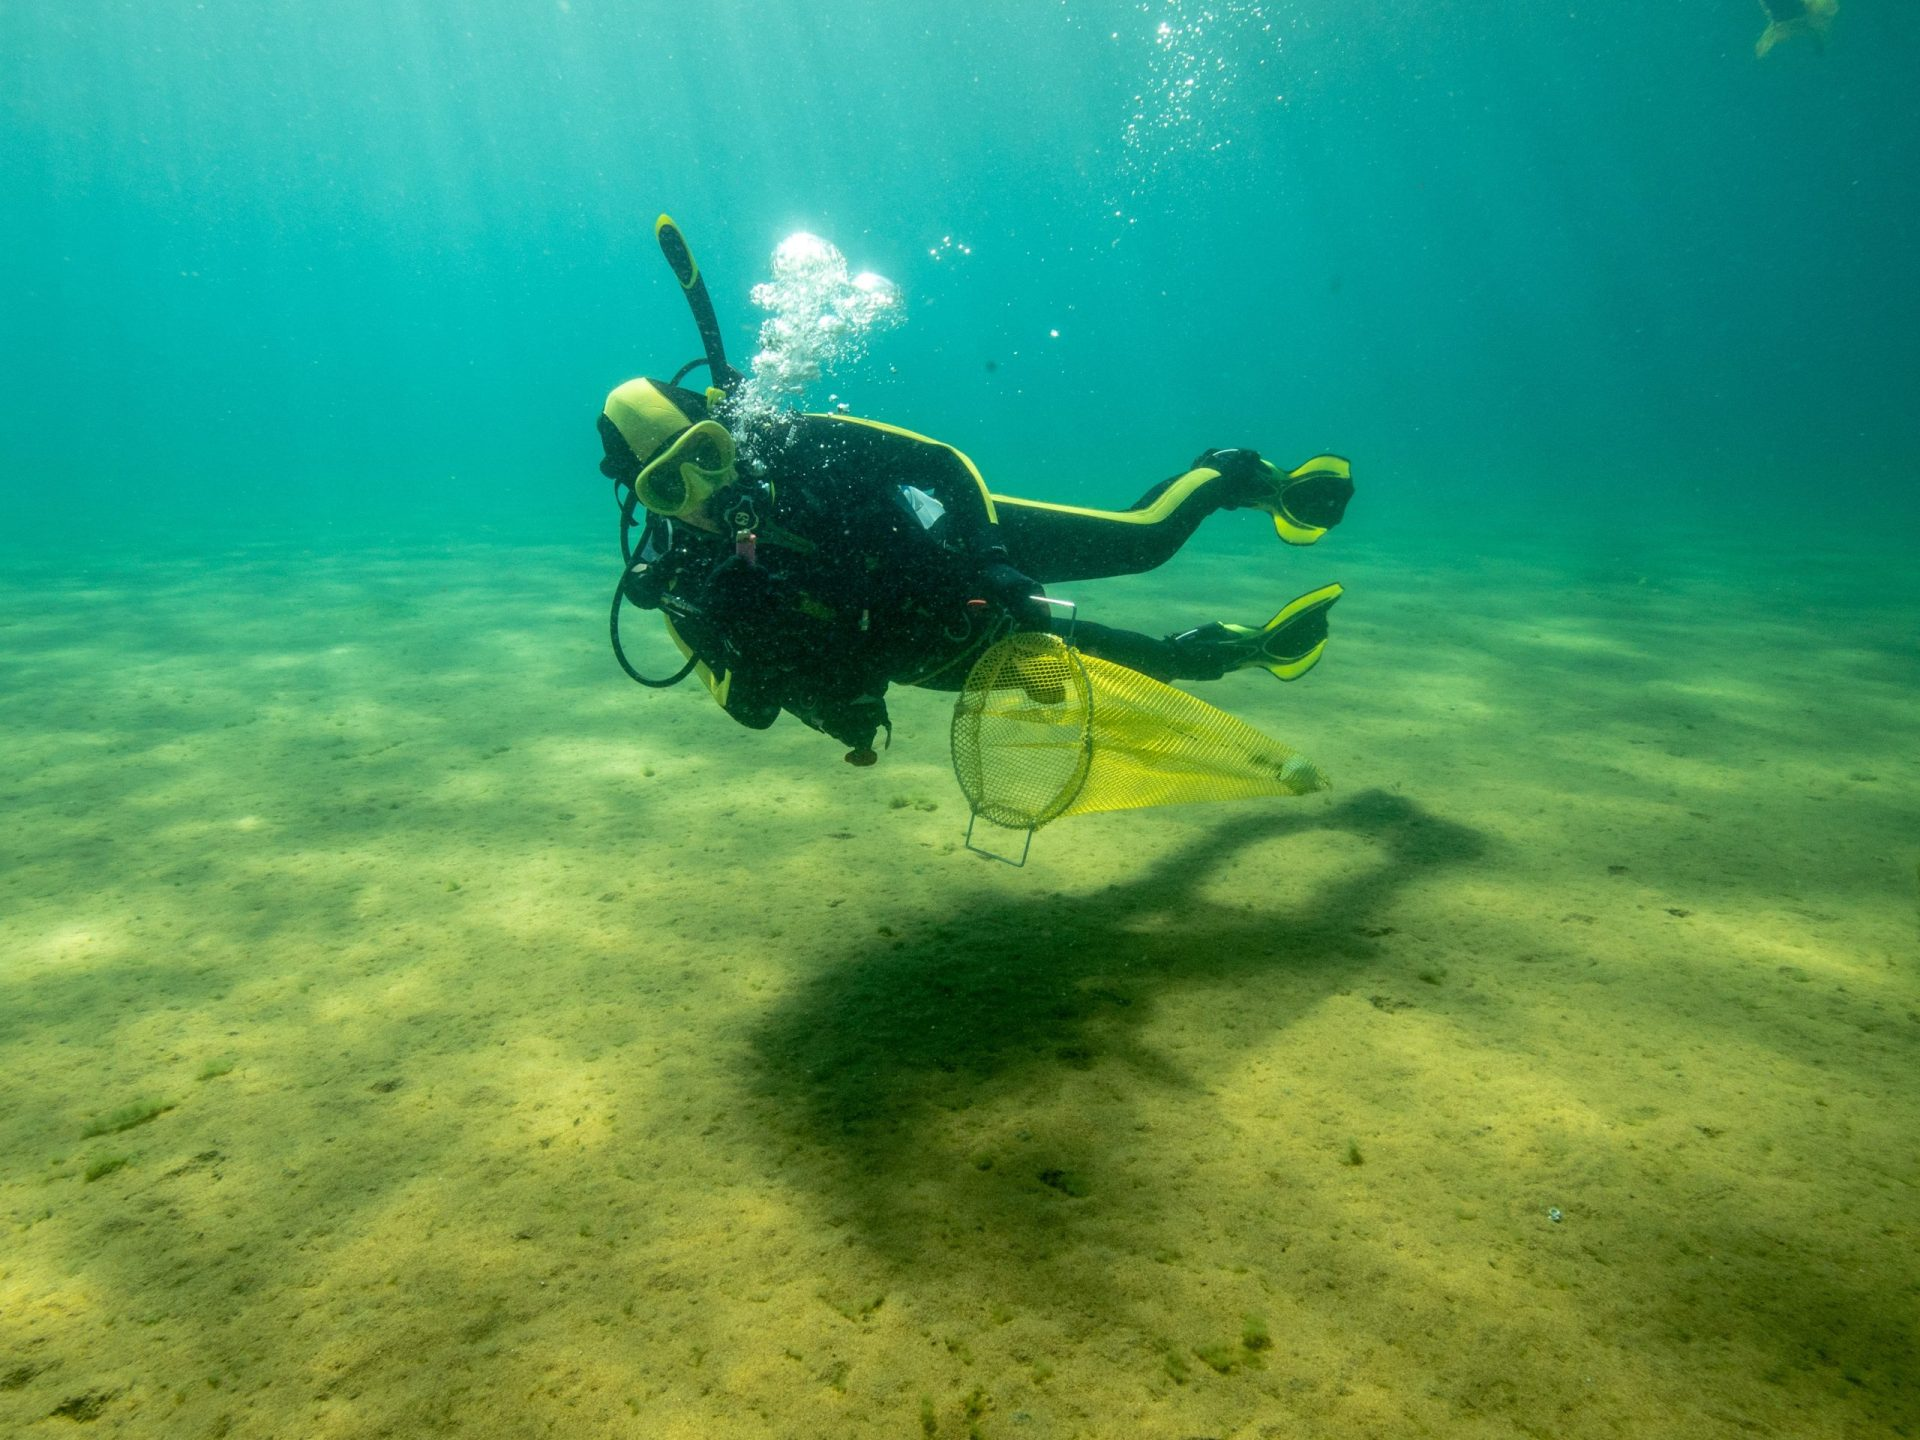 A diver from Clean Up The Lake collects underwater trash.